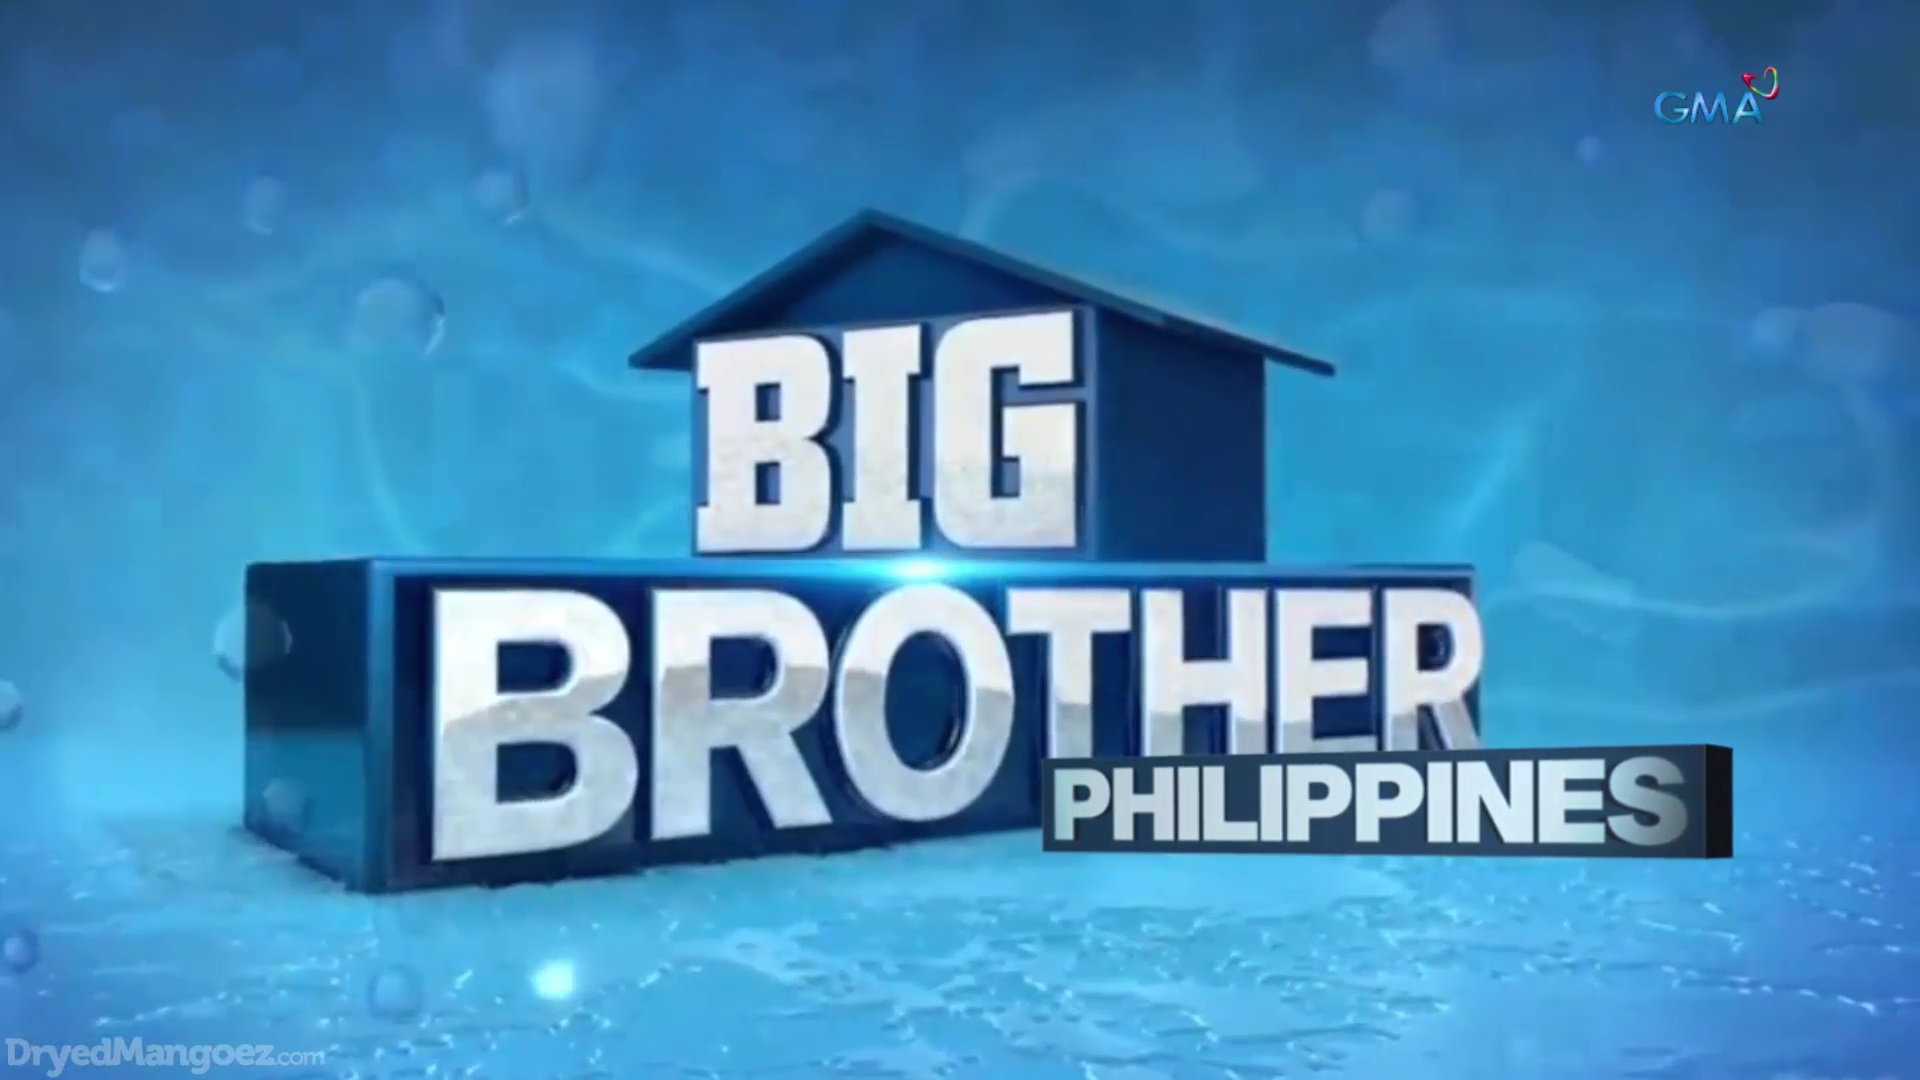 Big Brother Philippines title card